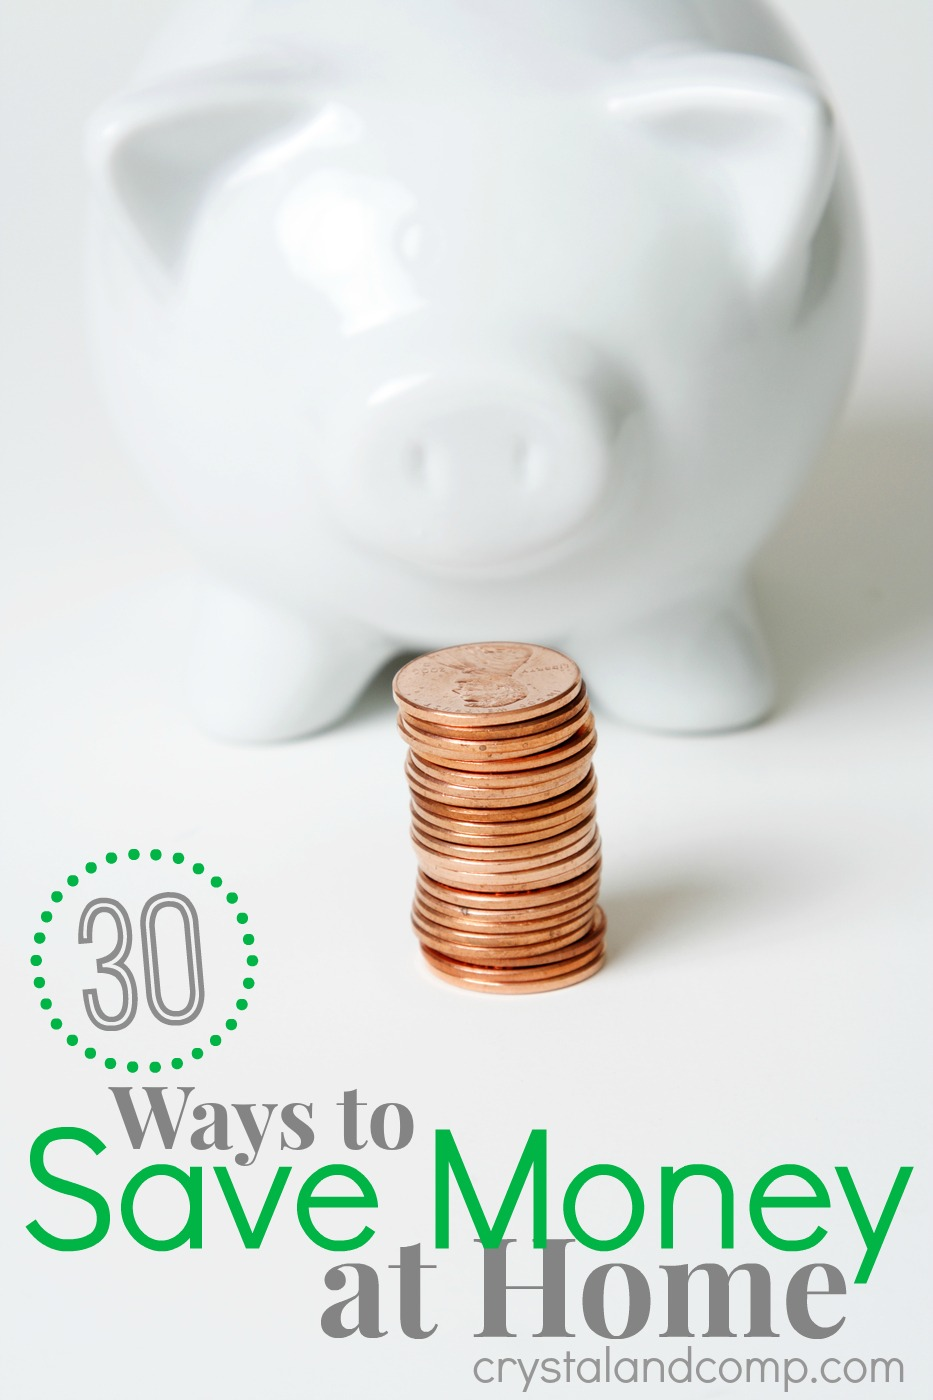 Over 30 Ways to Save Money at Home | CrystalandComp.com